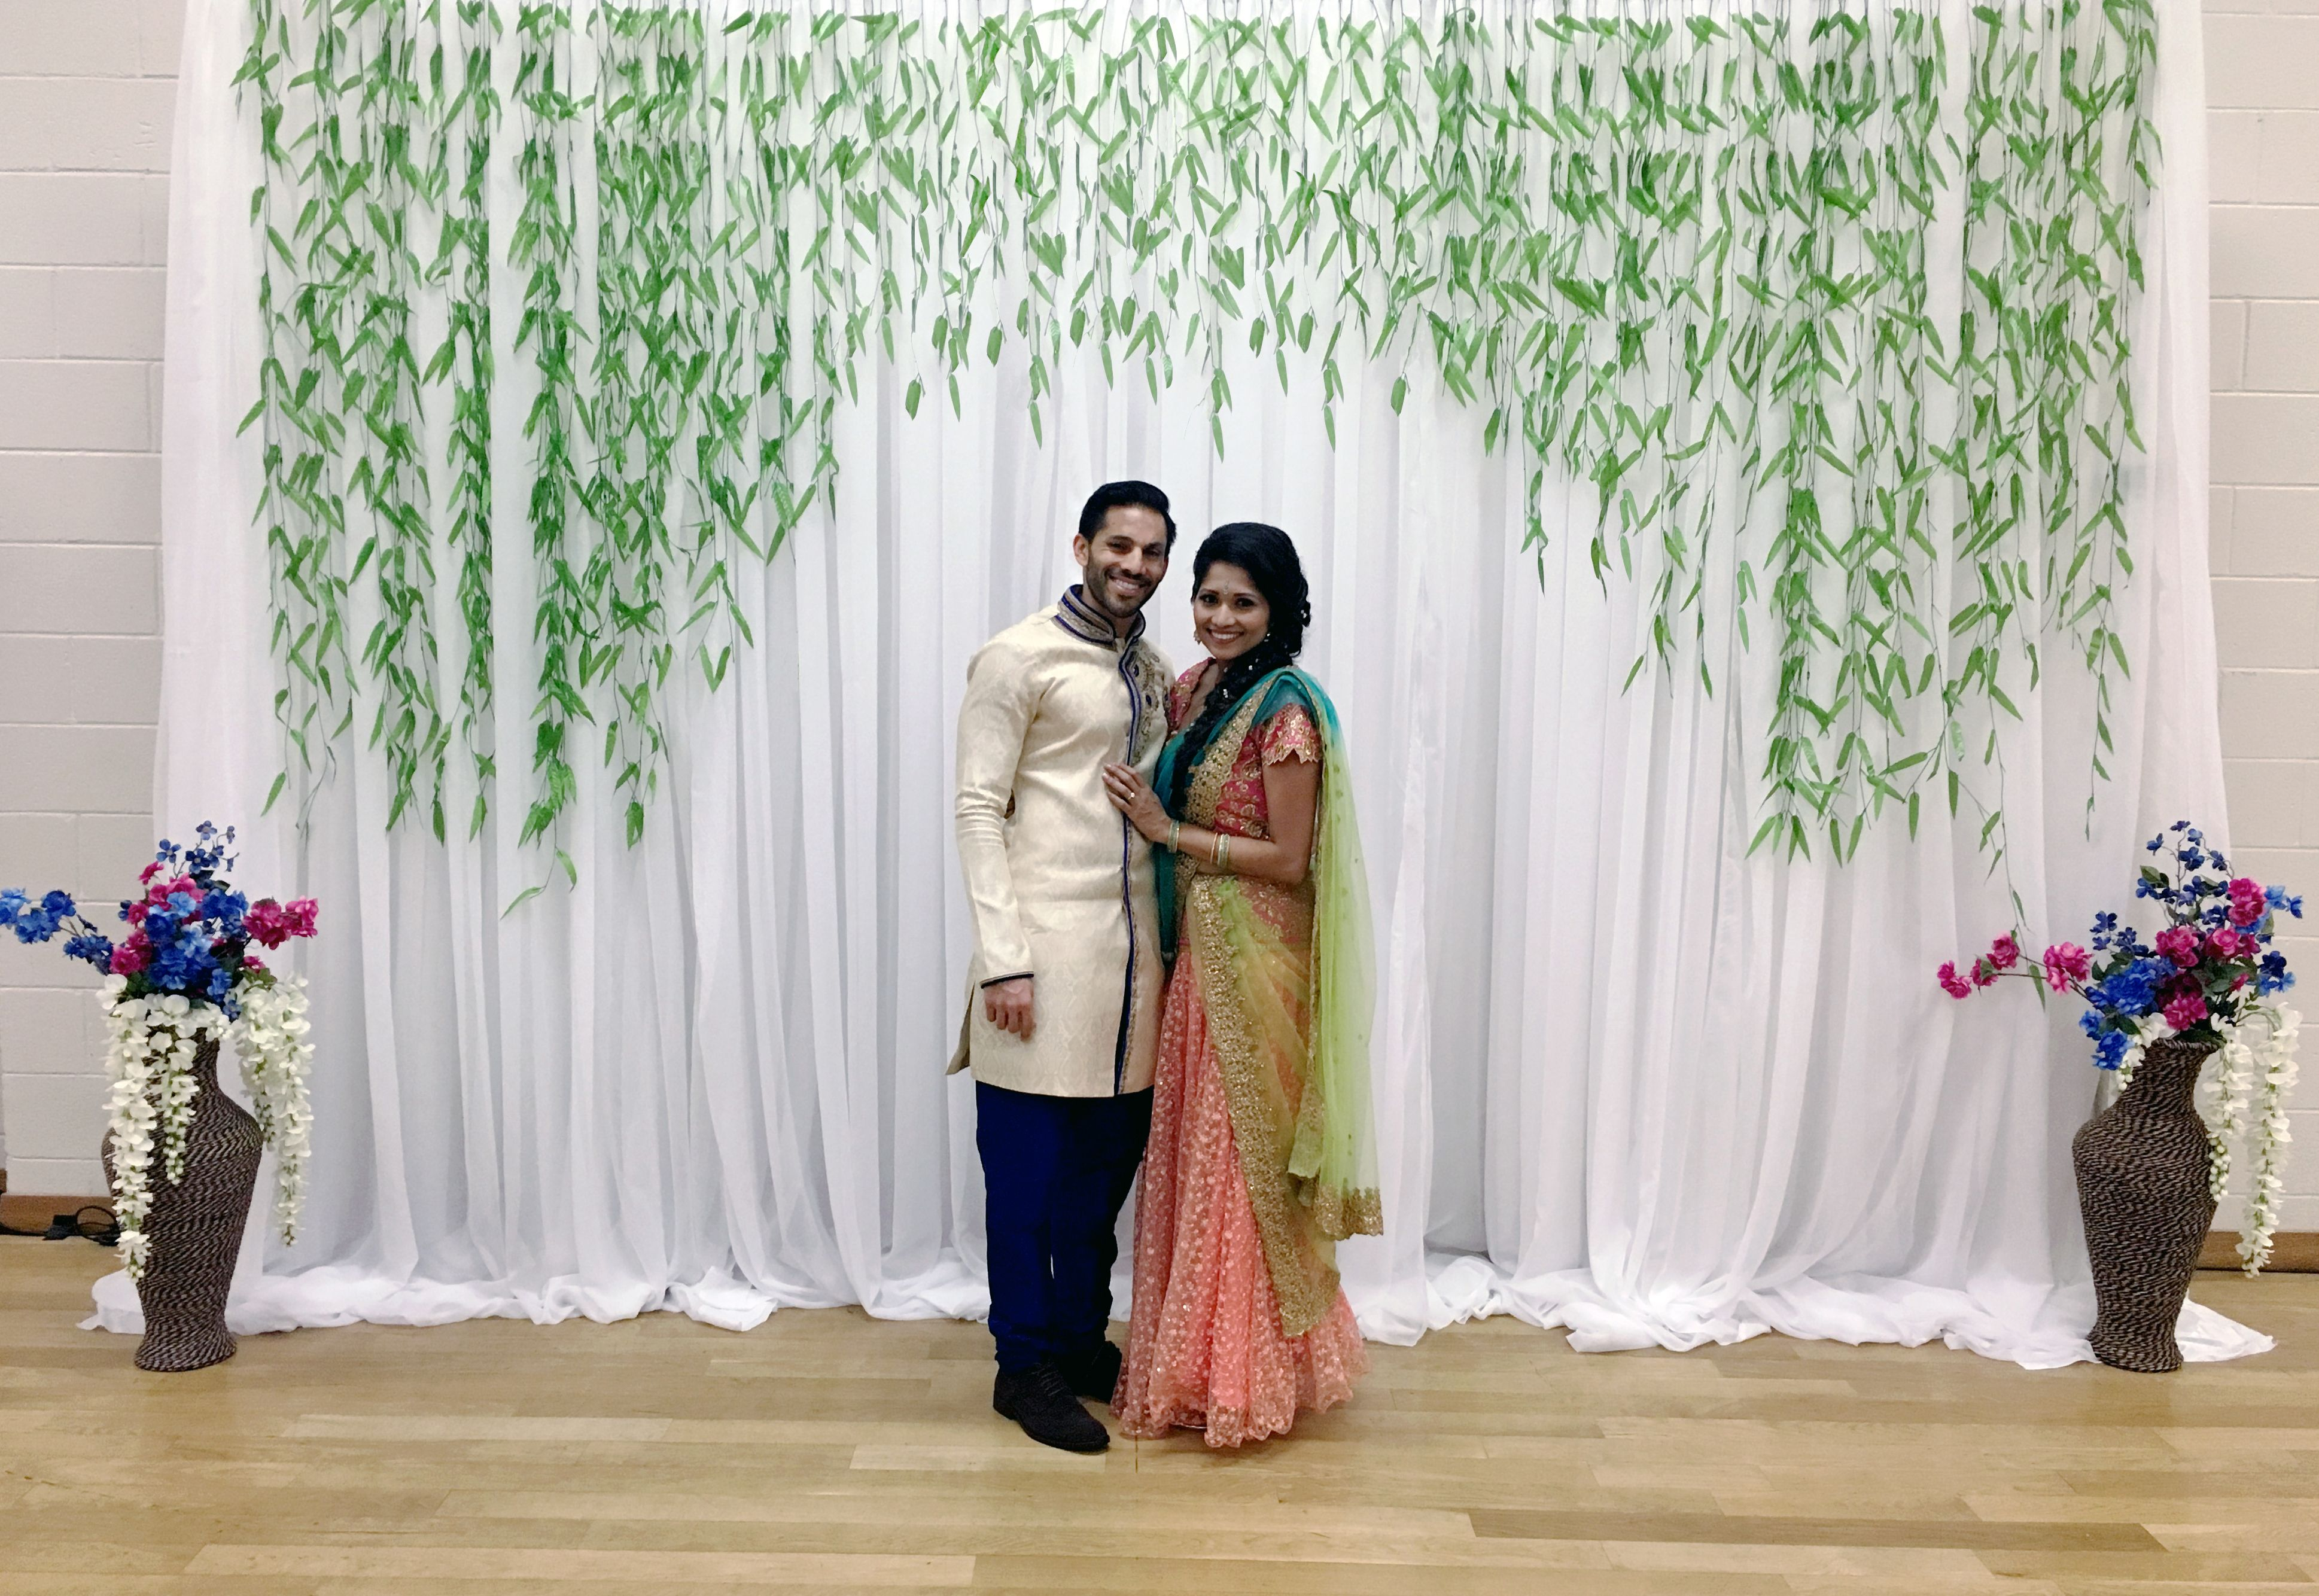 Green Rain Backdrop White Sheer Backdrop With Greenery For This Indian Engagement Party Engagement Party Backdrop Wedding Draping Green Backdrops